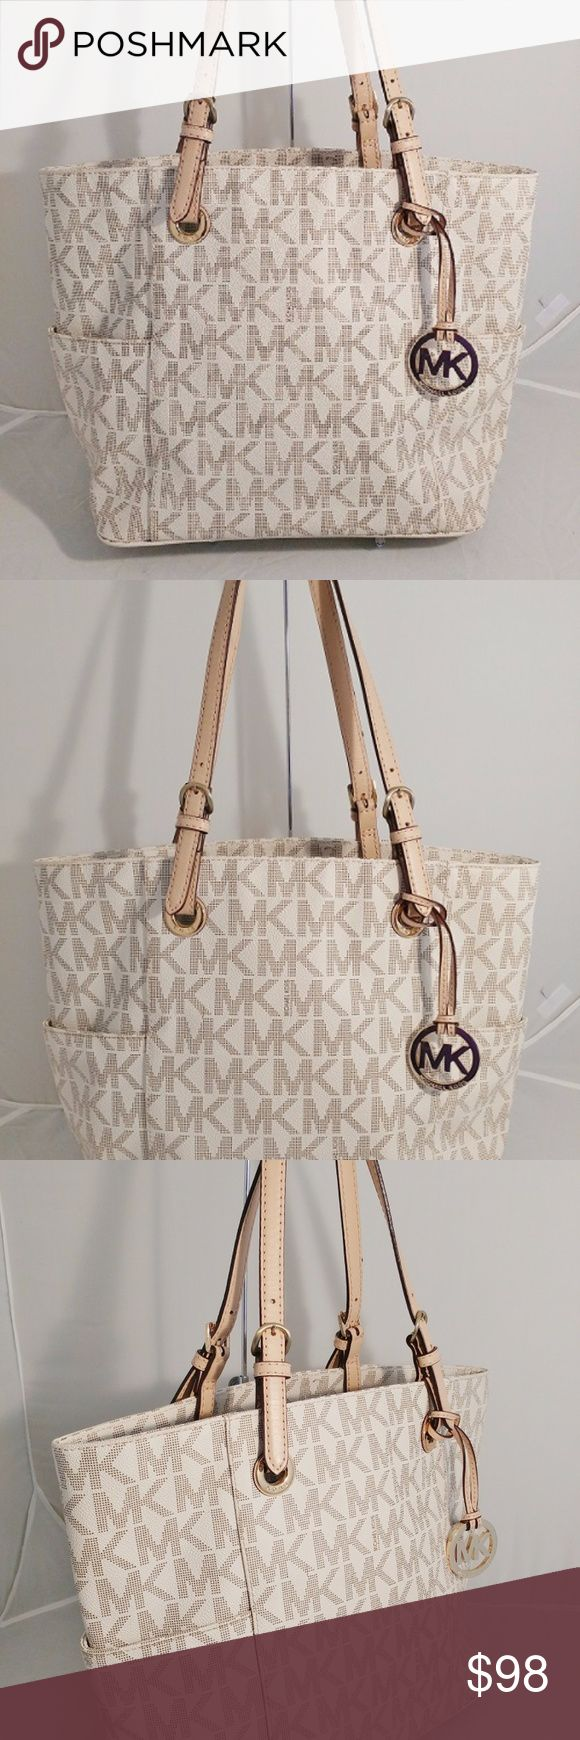 """Michael Kors East West Signature Vanilla Tote Bag Expert-level organization and glamorous details make this MICHAEL Michael Kors Jet Set tote the ultimate work-play-travel companion. Faux leather Large sized bag; 14-1/2""""W x 10-1/2""""H x 5-1/2""""D Silhouette is based off 5'9"""" model 8""""L double handles Open top 2 exterior side slip pockets 1 center zip interior compartment, 4 slip pockets & key clip Michael Kors Bags Totes"""